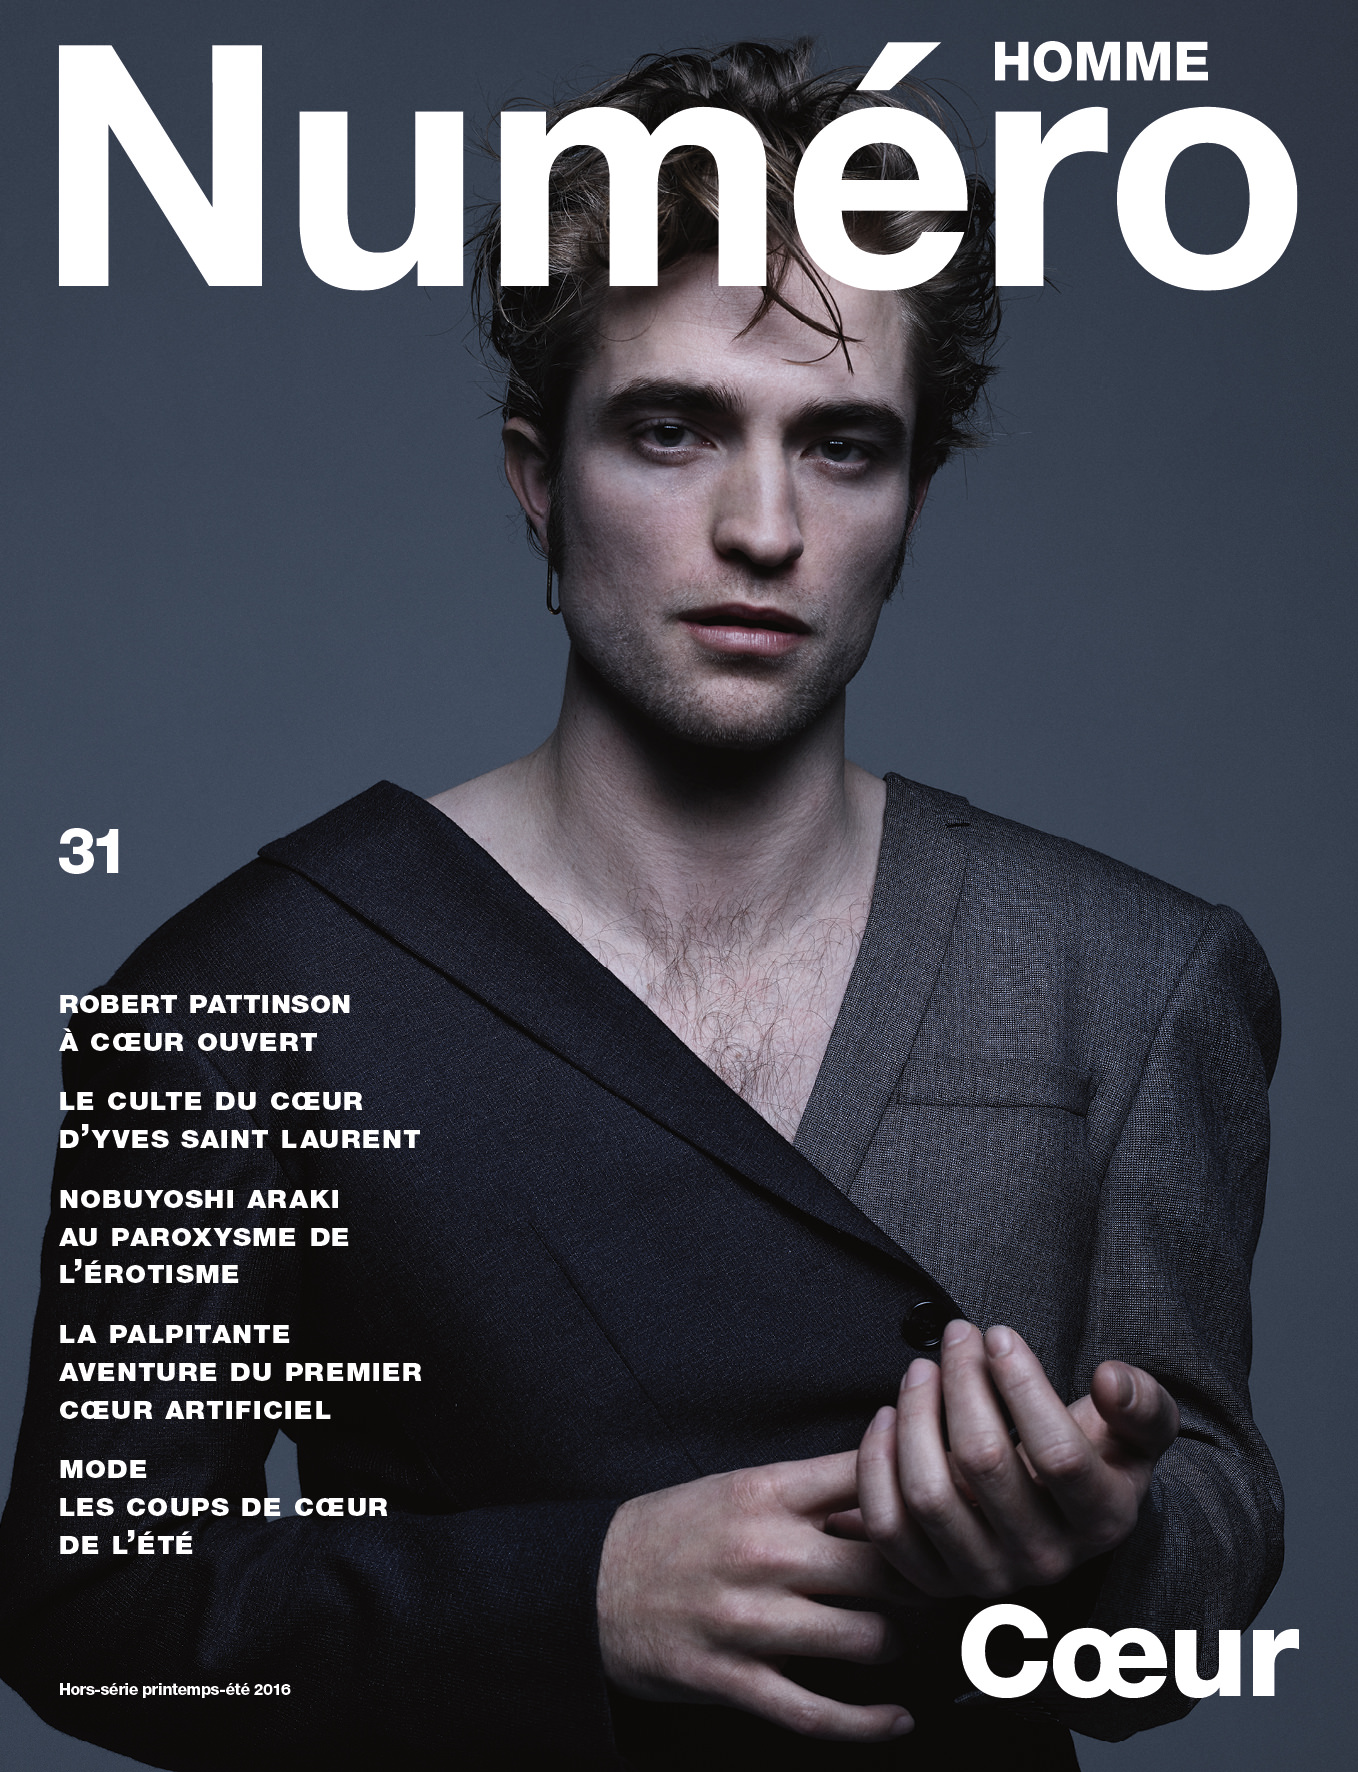 Exclusive: Robert Pattinson, Dior Homme's new face, photographed by Jean-Baptiste Mondino for Numéro Homme's latest cover